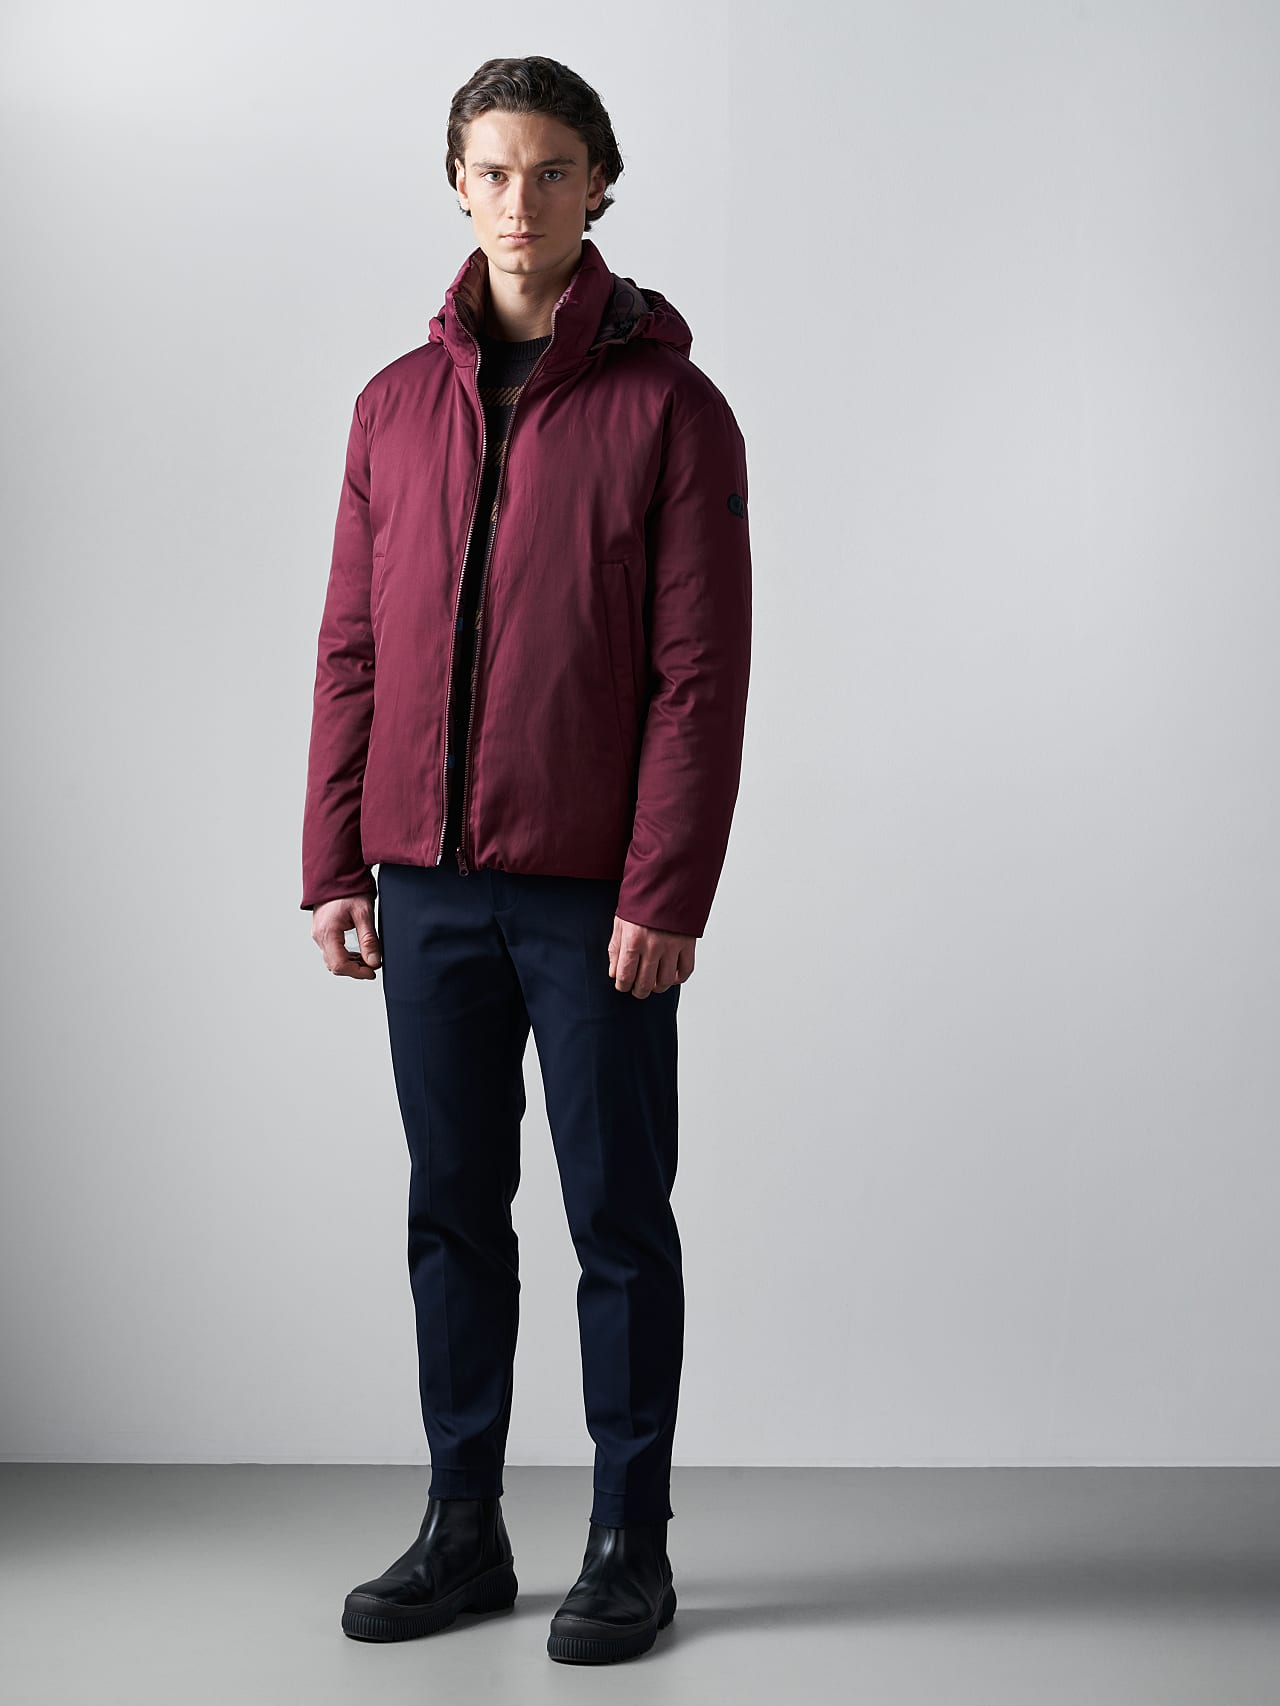 OTACE V1.Y5.02 Reversible 2-in-1 Puffer Jacket bordeaux Extra Alpha Tauri